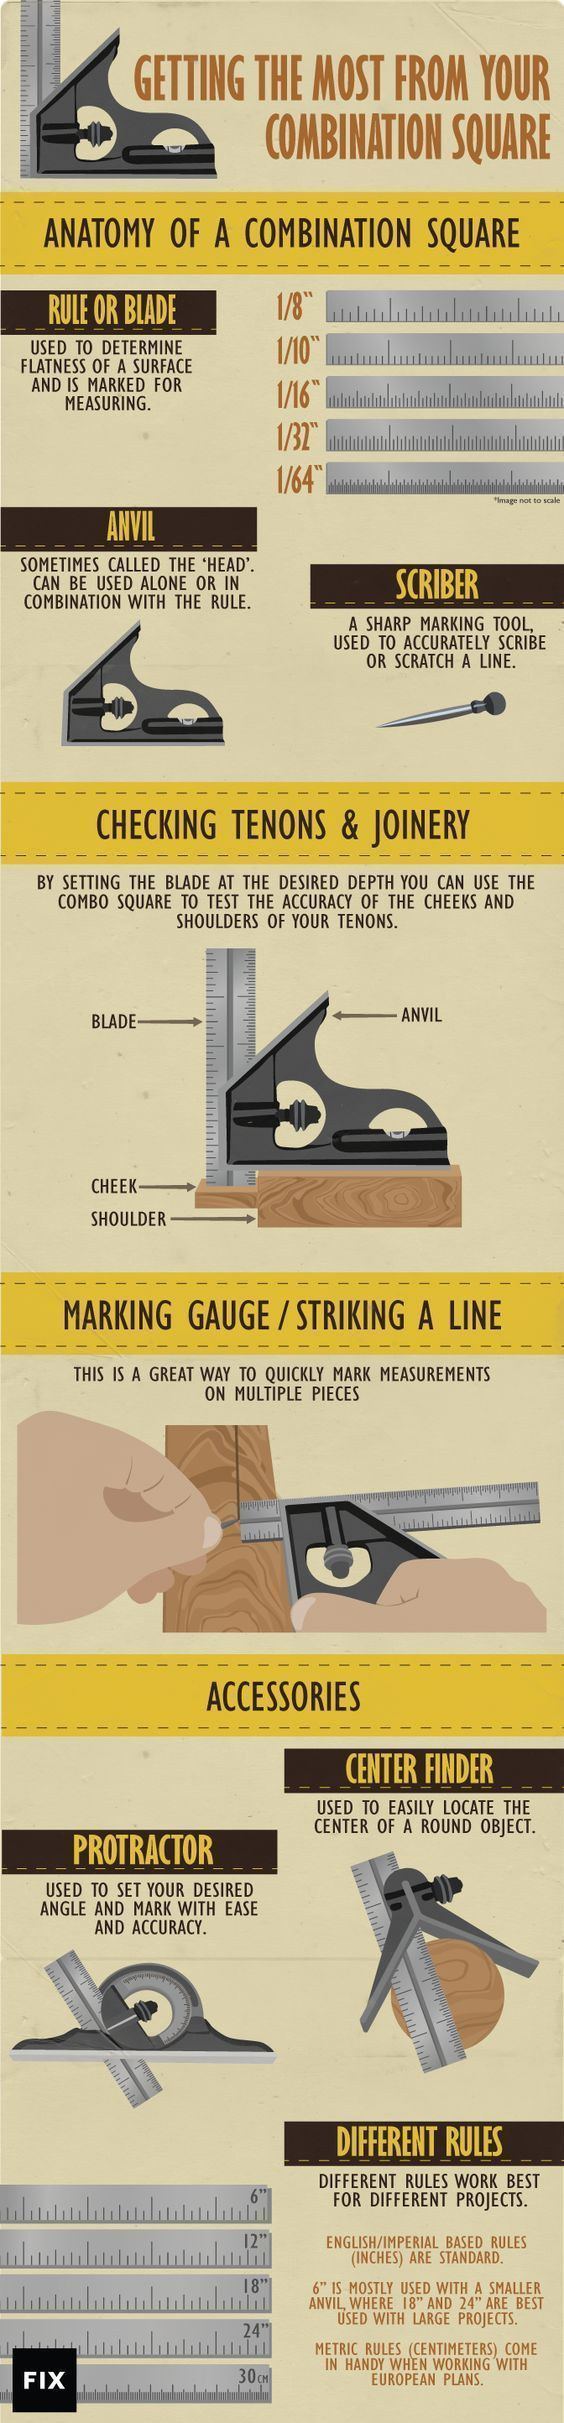 The combination square is a fundamental tool for almost all woodworking jobs, but most people don't know how to properly use it. Get back to basics and learn how a combination square will take your craft to the next level. #WoodworkingTips